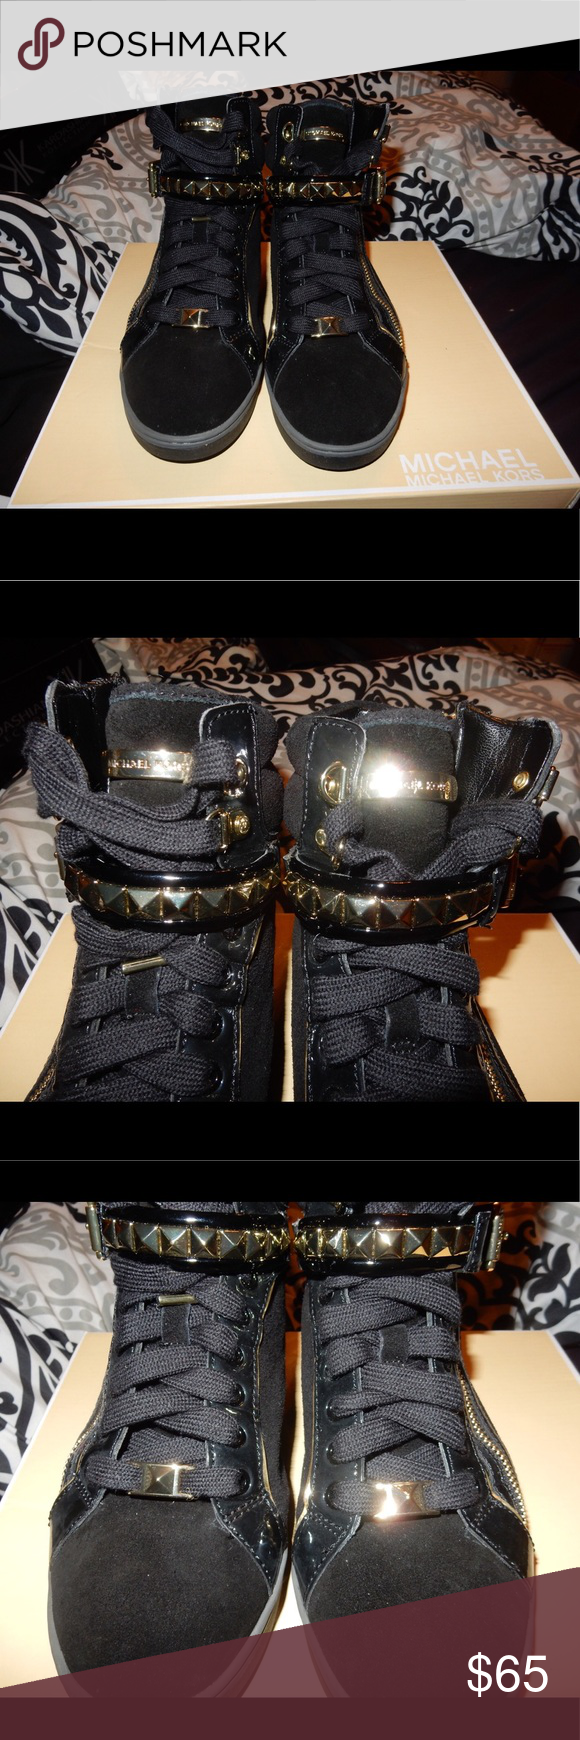 MK Glam Studded High Top Sneakers NEVER WORN BEFORE! Impulse buy!                                               A mix of suede and liquid-shine patent finishes add to the drama of a statement high-top sneaker finished with edgy pyramid studs. Adjustable strap with buckle and lace-up closures; side-zip gore. Suede and synthetic upper/textile lining/rubber sole MICHAEL Michael Kors Shoes Sneakers